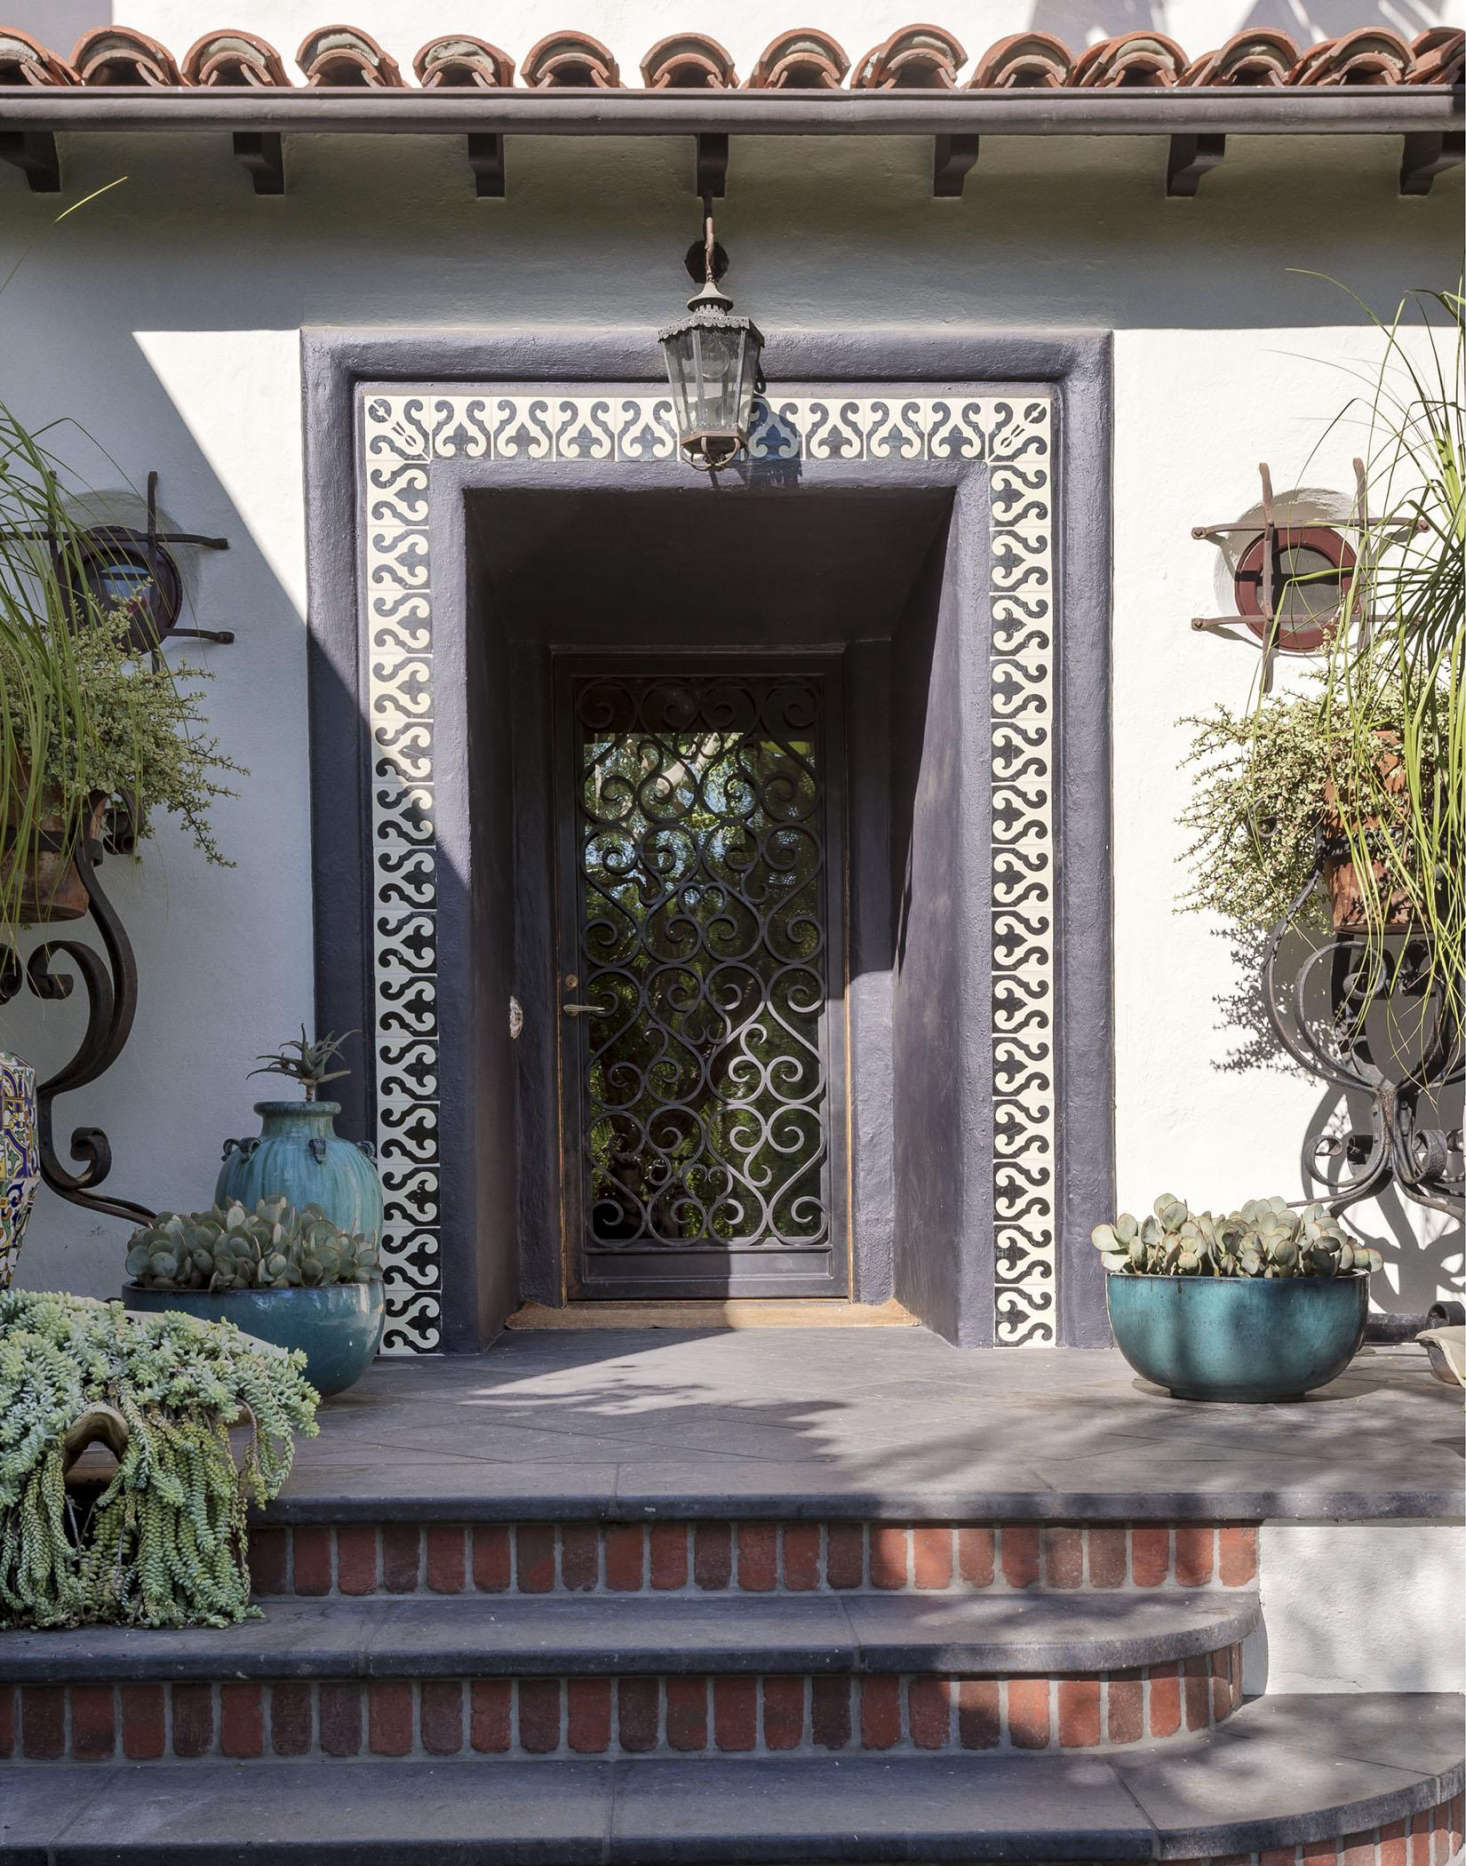 Designers (and siblings) Ramin and Pam Shamshiri added curb appeal to a 1920s Hollywood garden with reclaimed ceramic patterned tile on a stucco facade and redbrick detailing on an entry stairway.